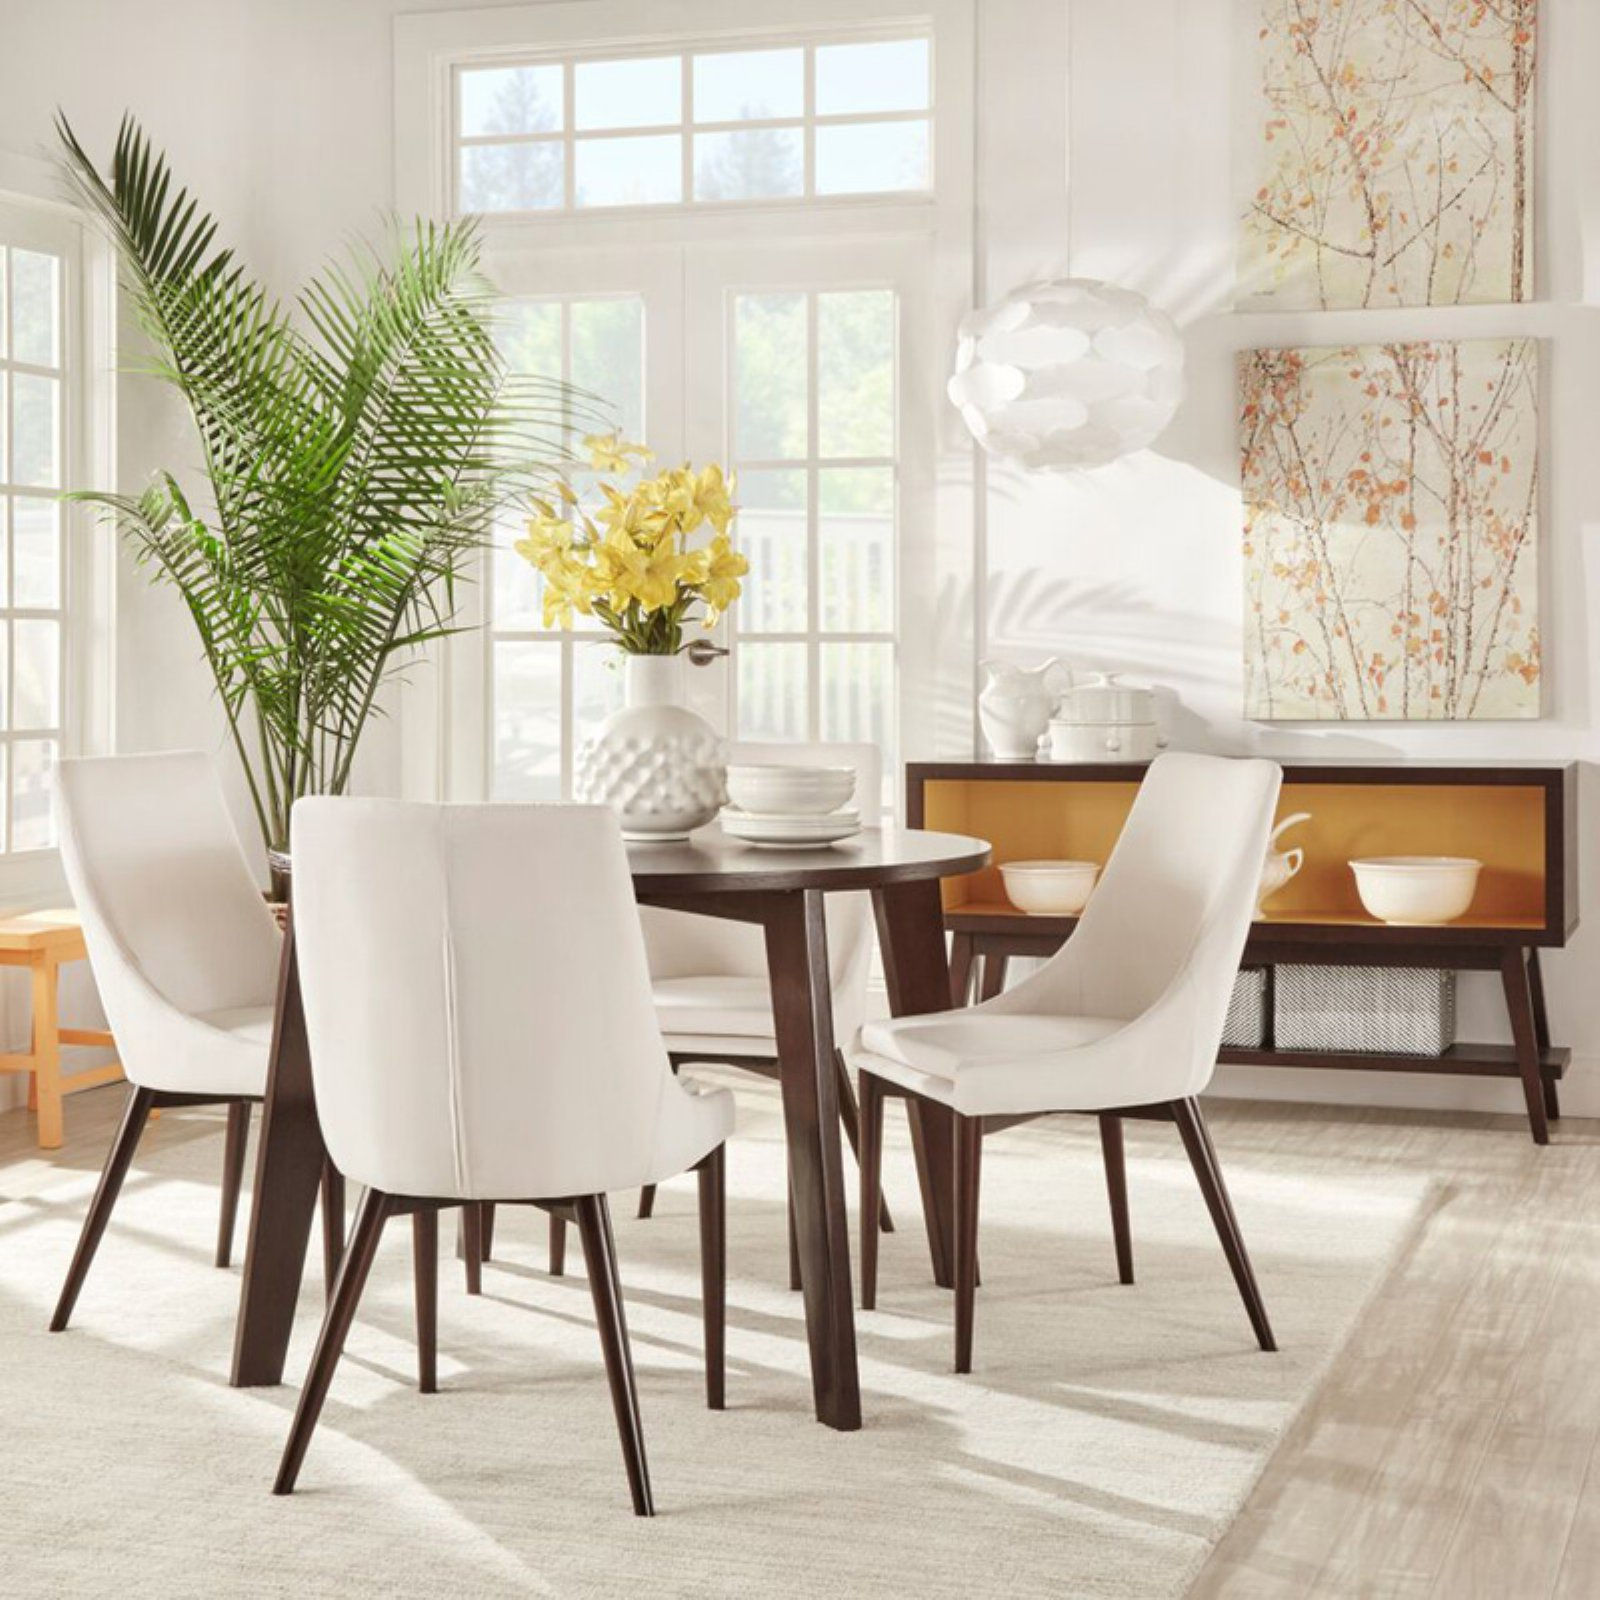 Chelsea Lane Baxter 5-Piece Dining Set, 1 Table, 4 Gray Chairs